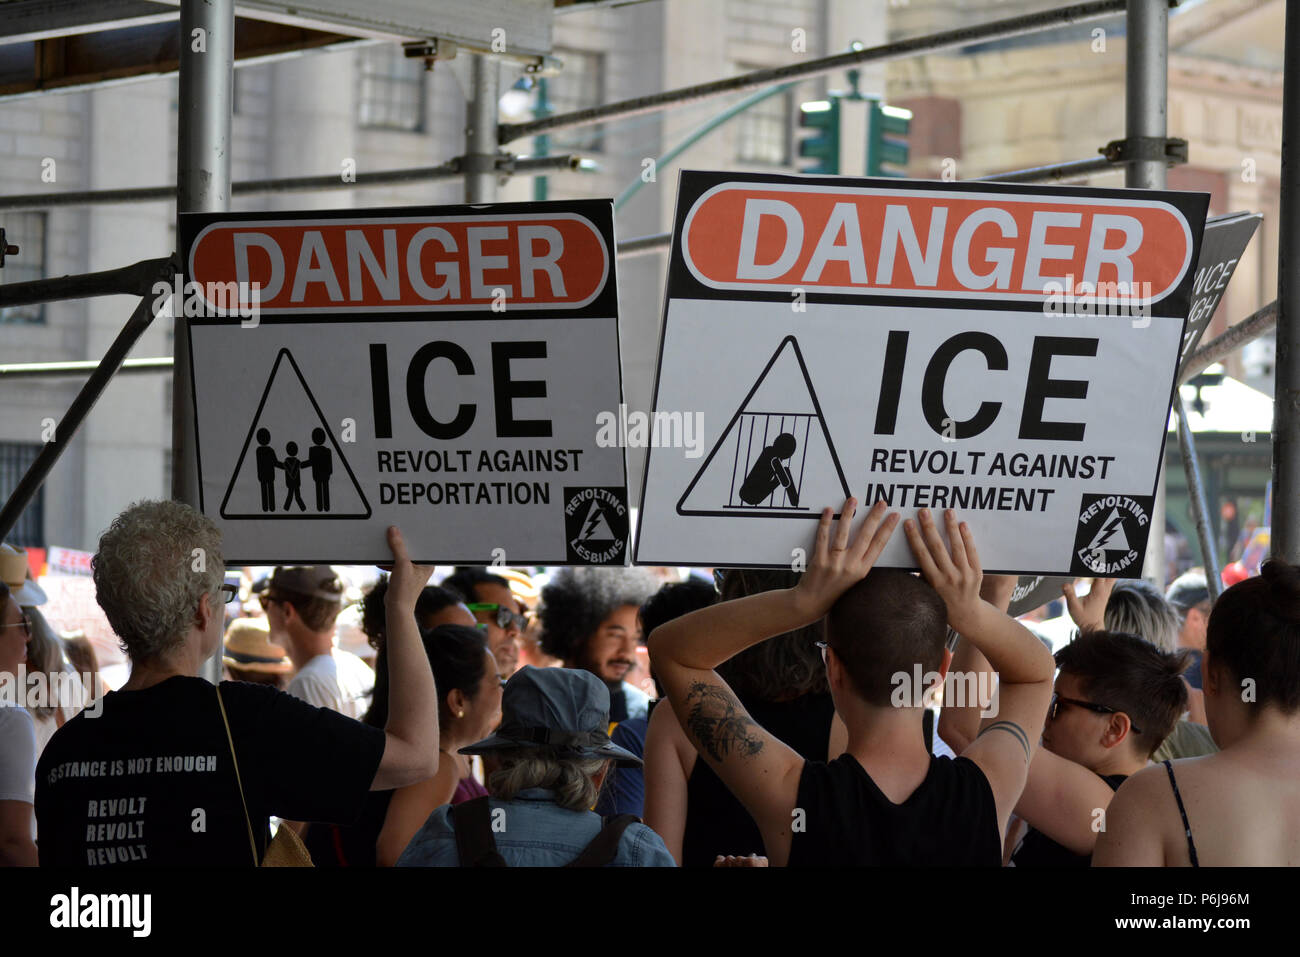 New York, USA, 30 June 2018. Families Belong Together March in New York City. Credit: Christopher Penler/Alamy Live News - Stock Image